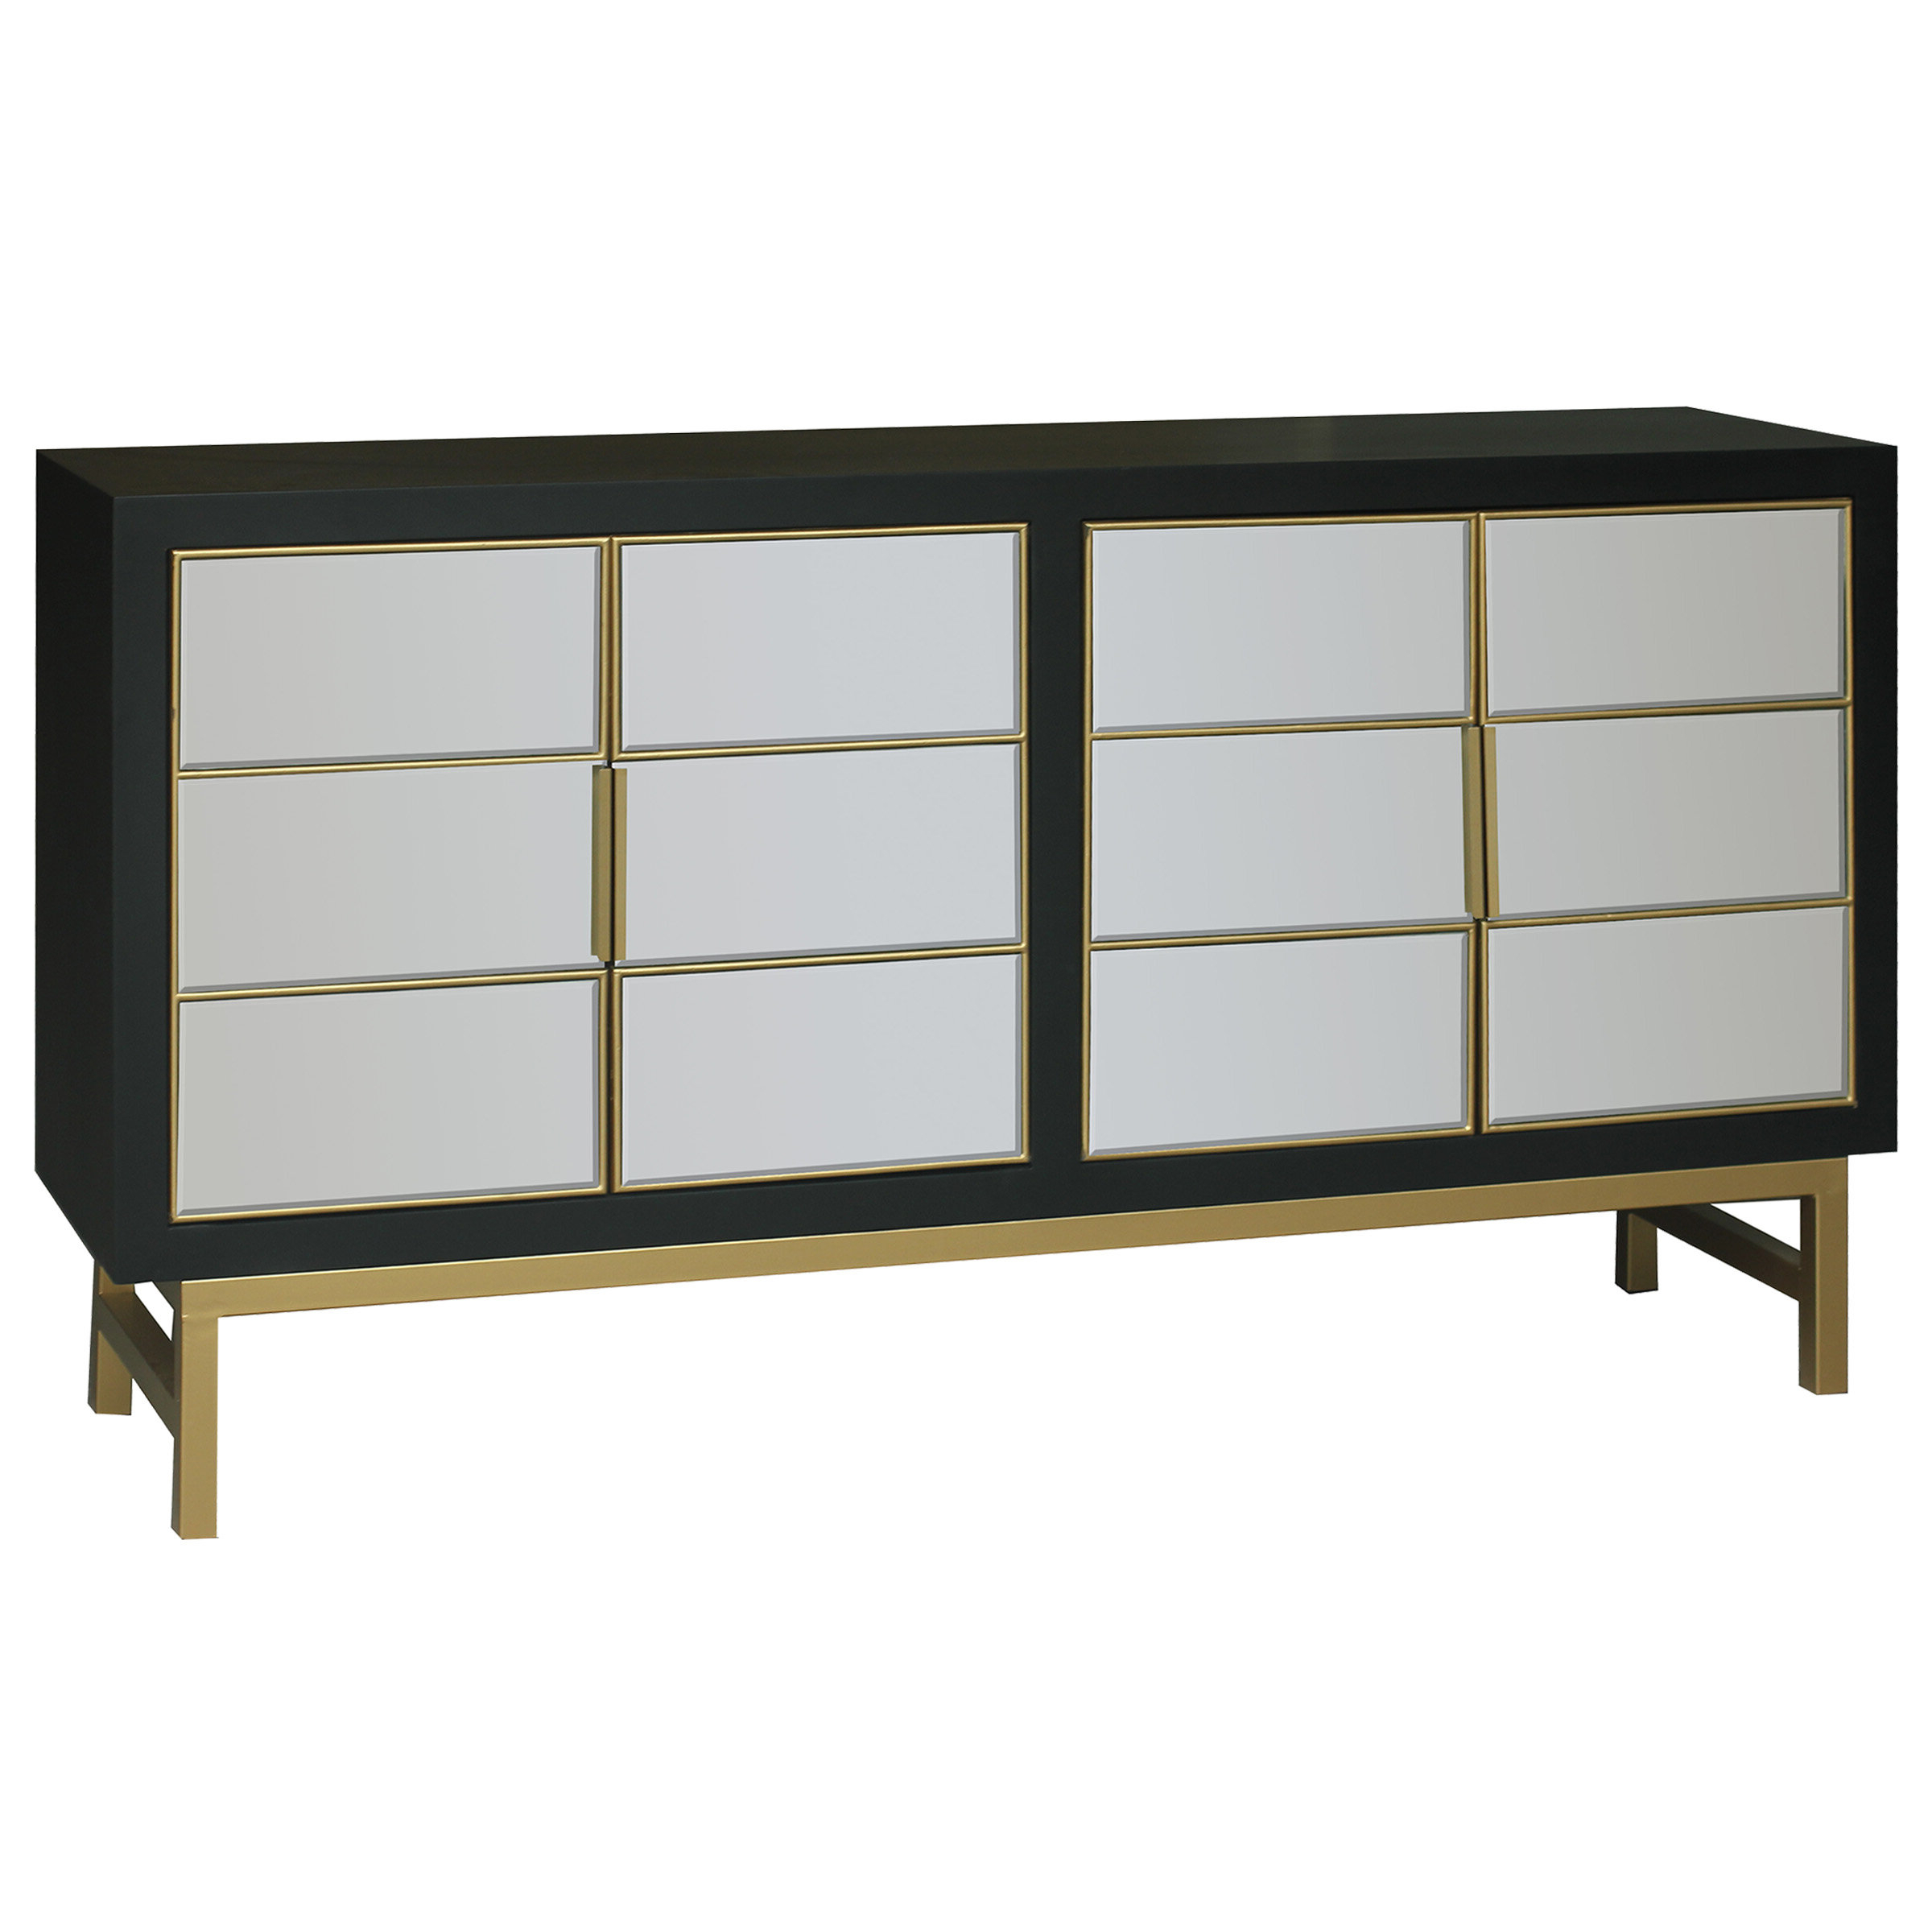 Modern & Contemporary Kieth 4 Door Credenza | Allmodern Throughout Bright Angles Credenzas (View 20 of 20)